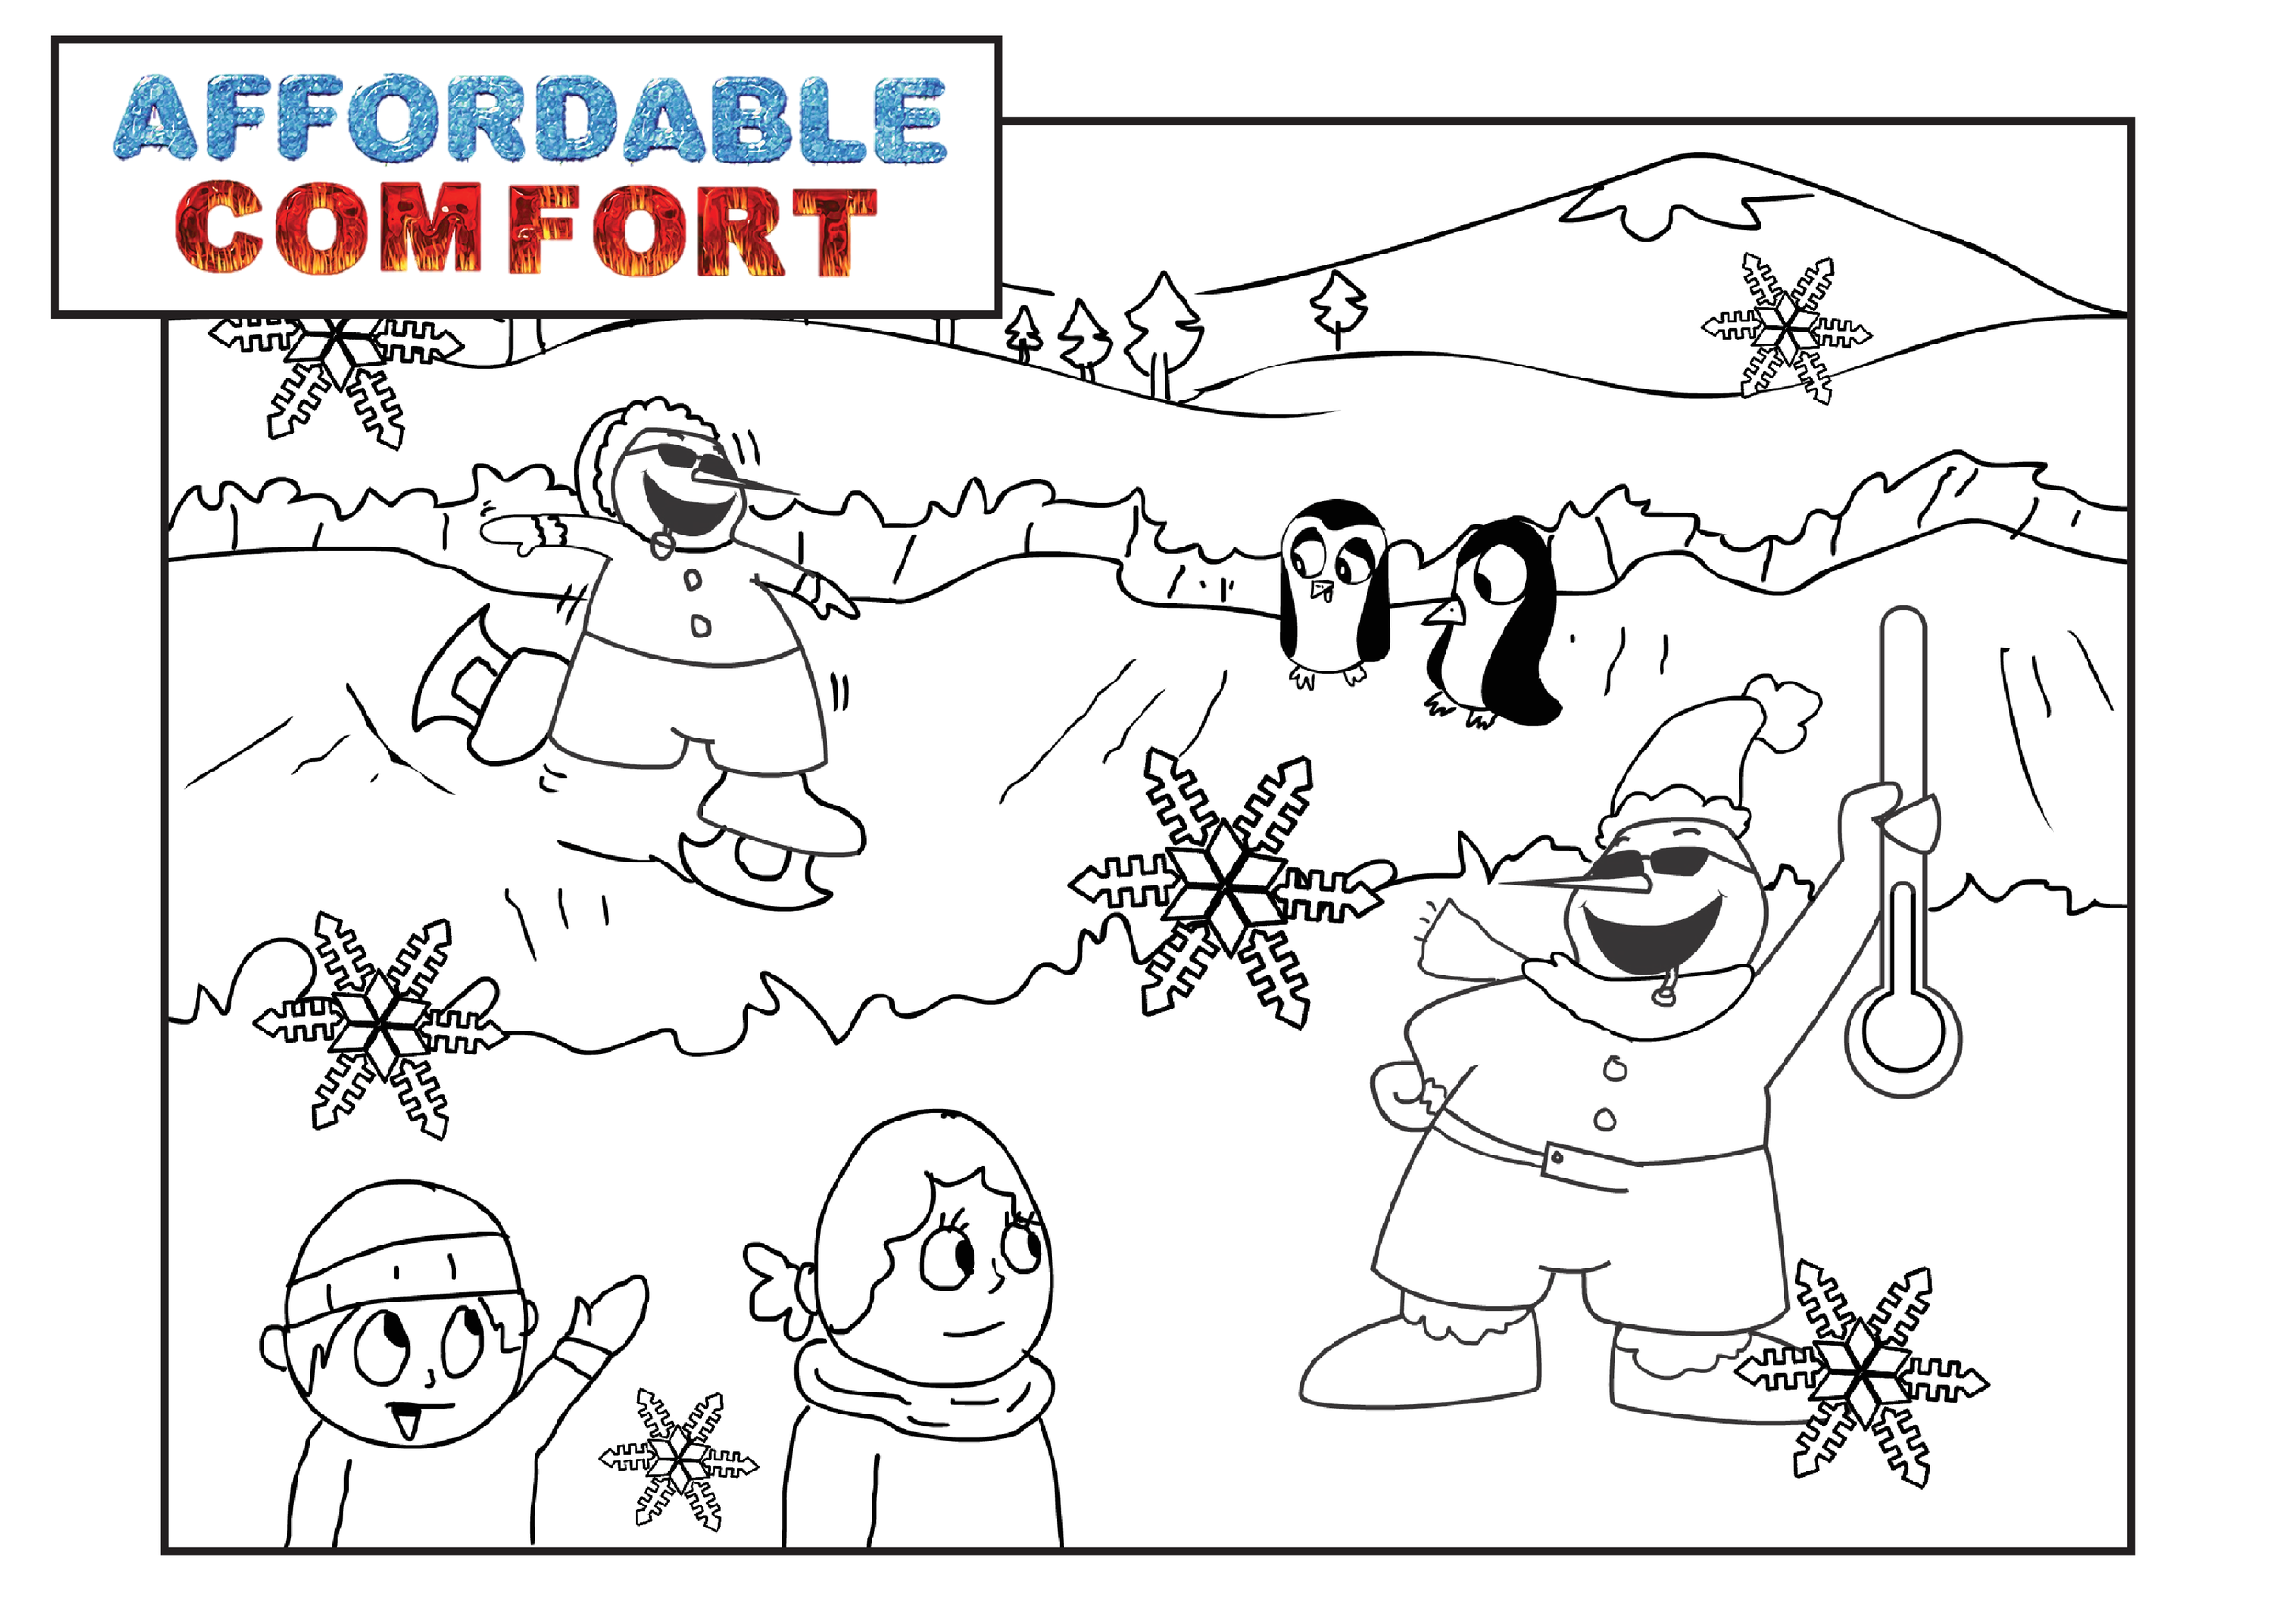 Affordable Comfort Coloring Contest-1.png